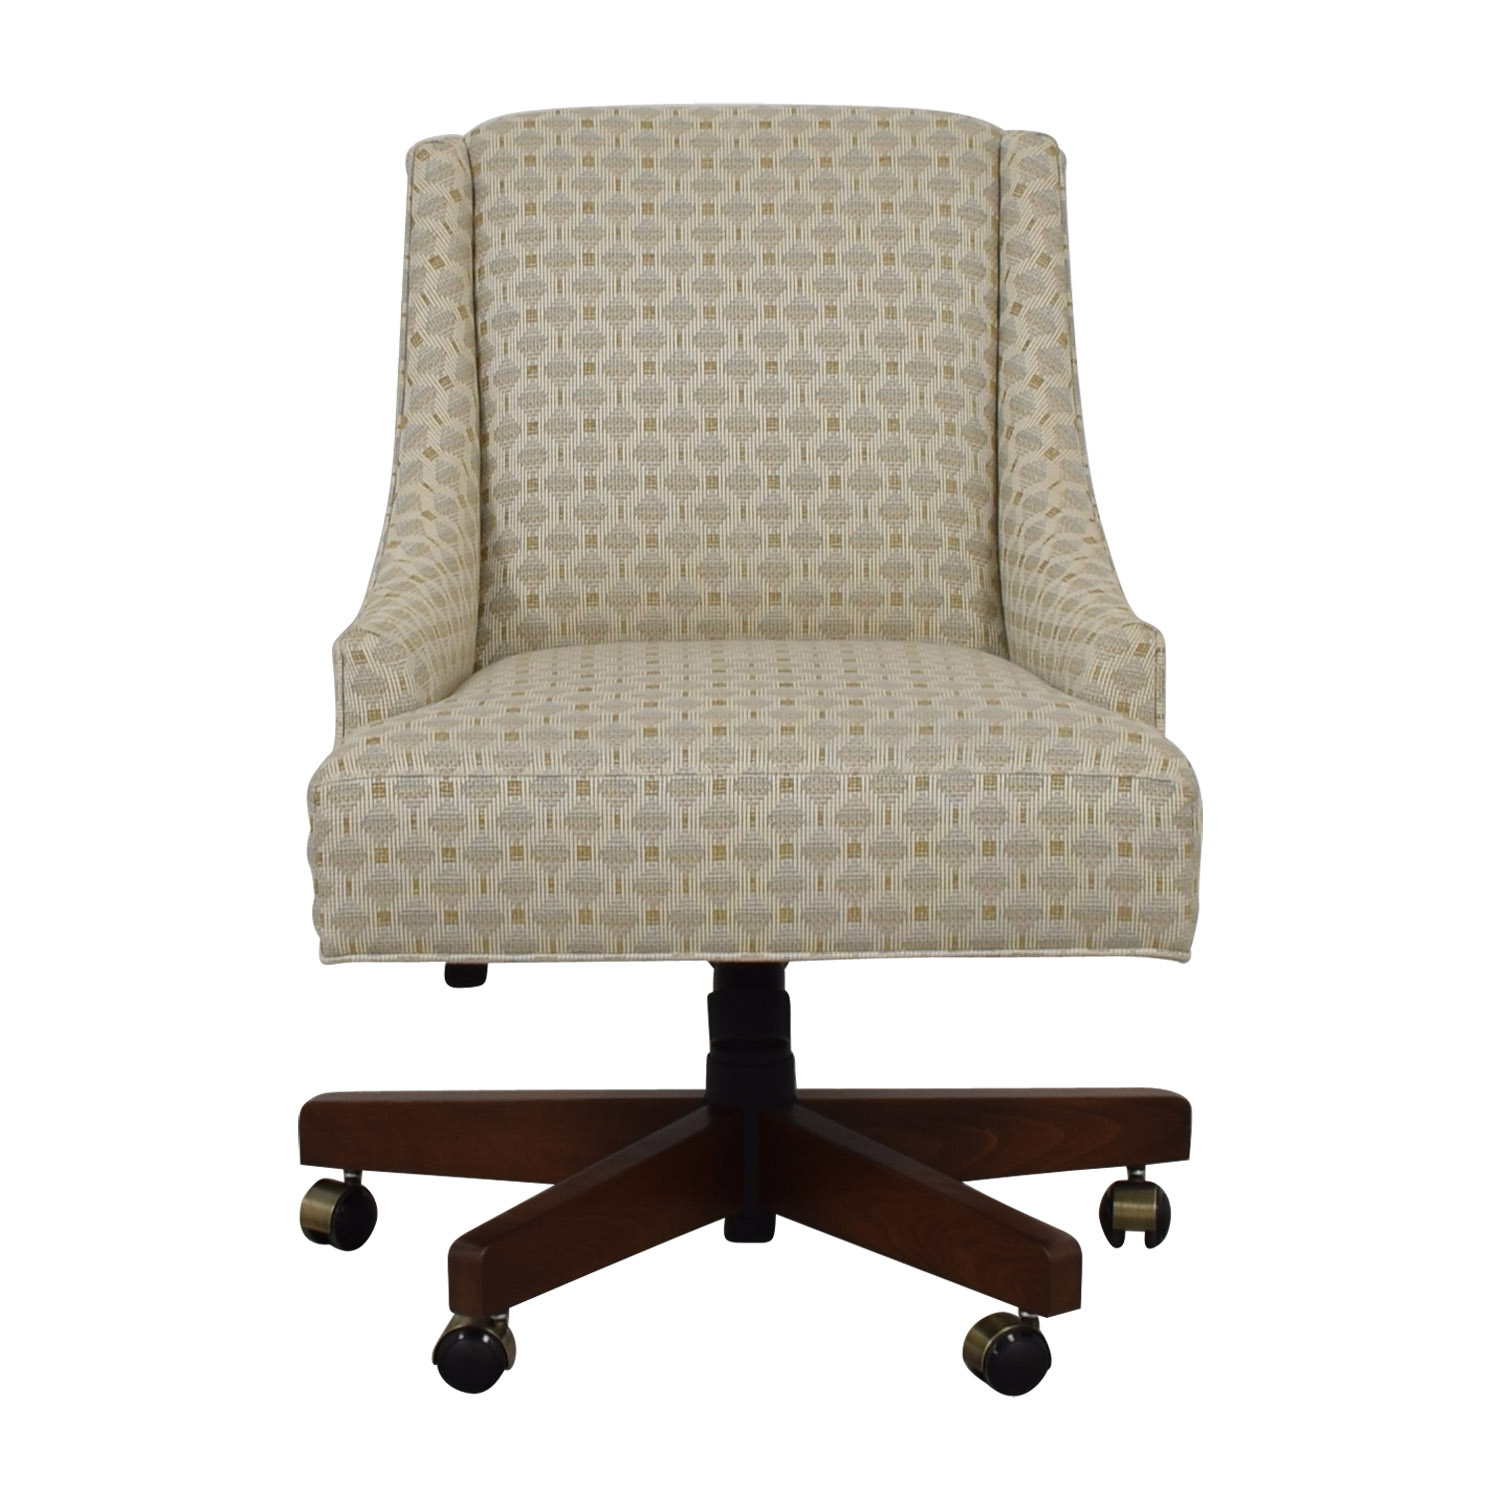 Ethan Allen Ethan Allen Beige Upholstered Office Chair on Castors